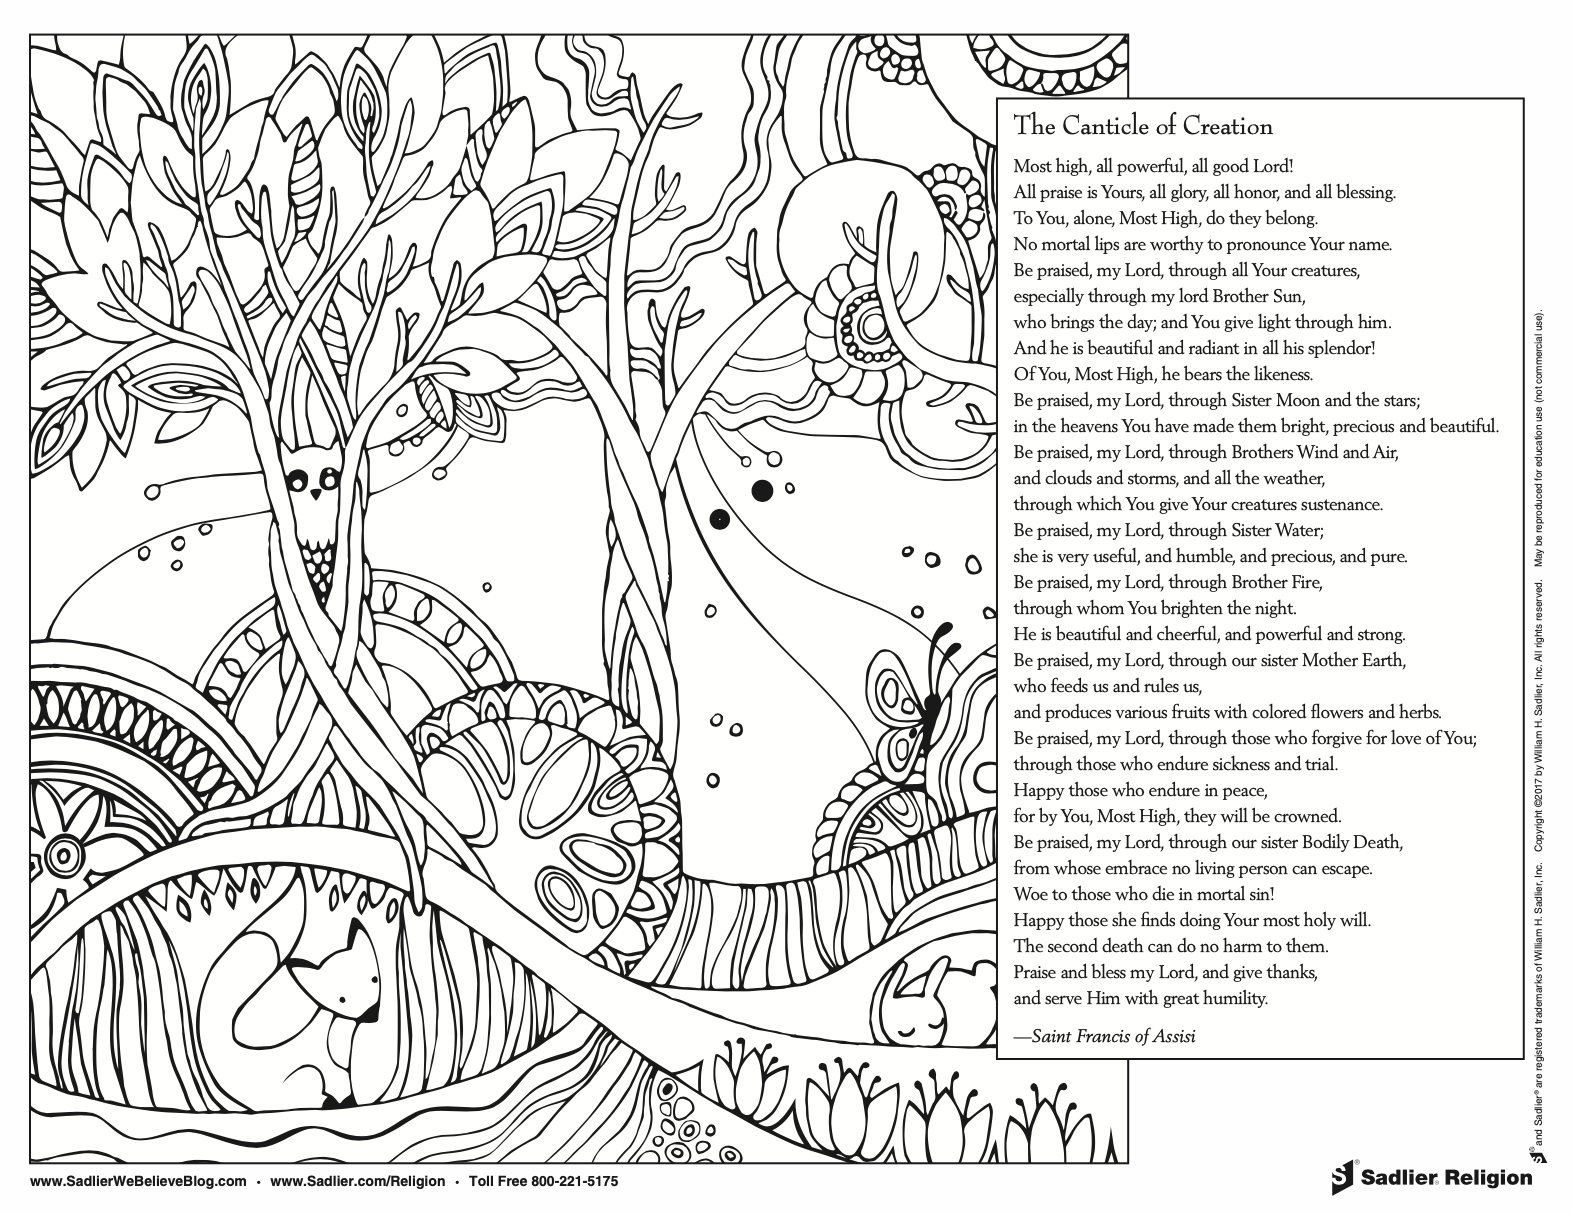 Canticle of Creation